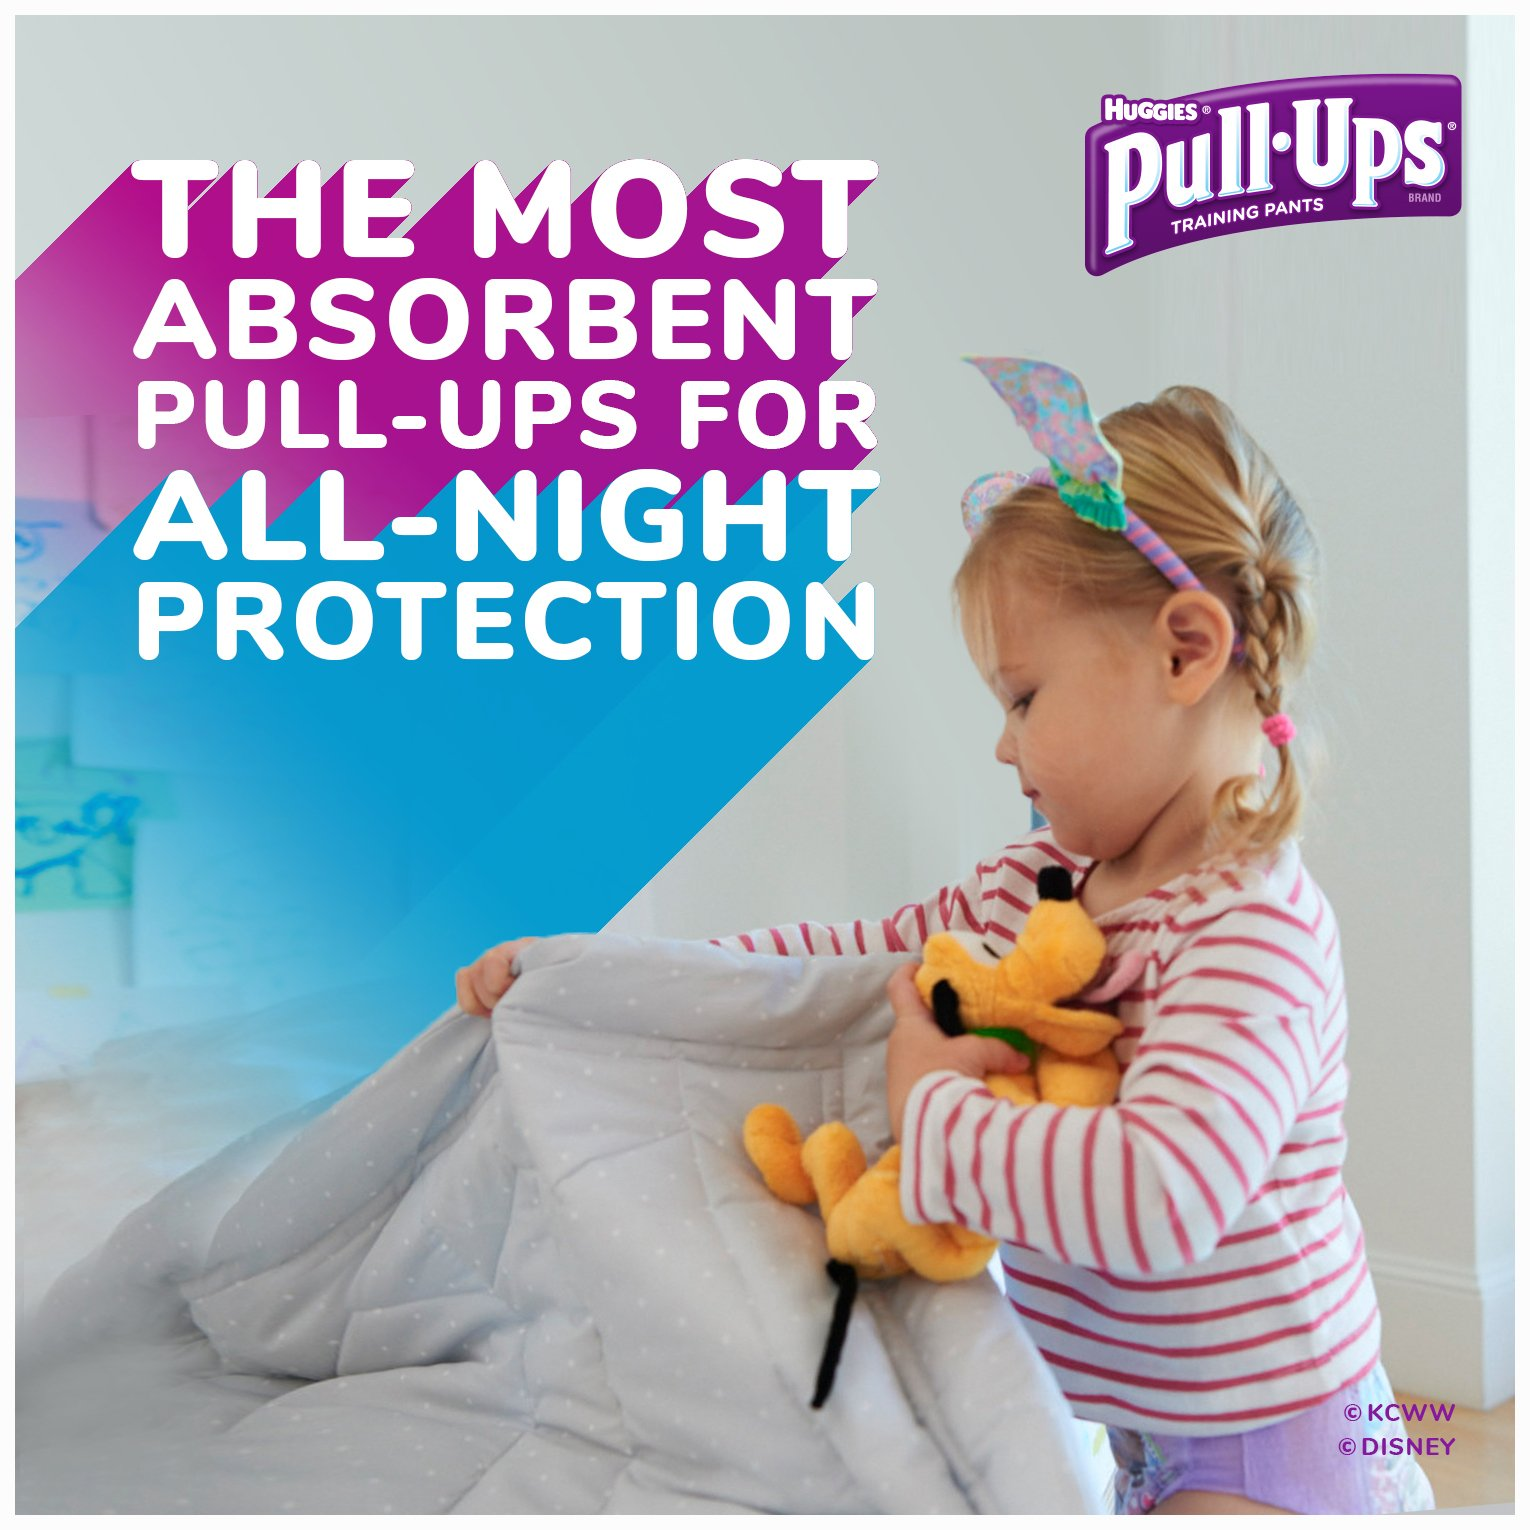 Pull-Ups Night-Time Potty Training Pants for Girls, 2T-3T (18-34 lb.), 23 Ct.- Pack of 4 (Packaging May Vary) by Pull-Ups (Image #5)